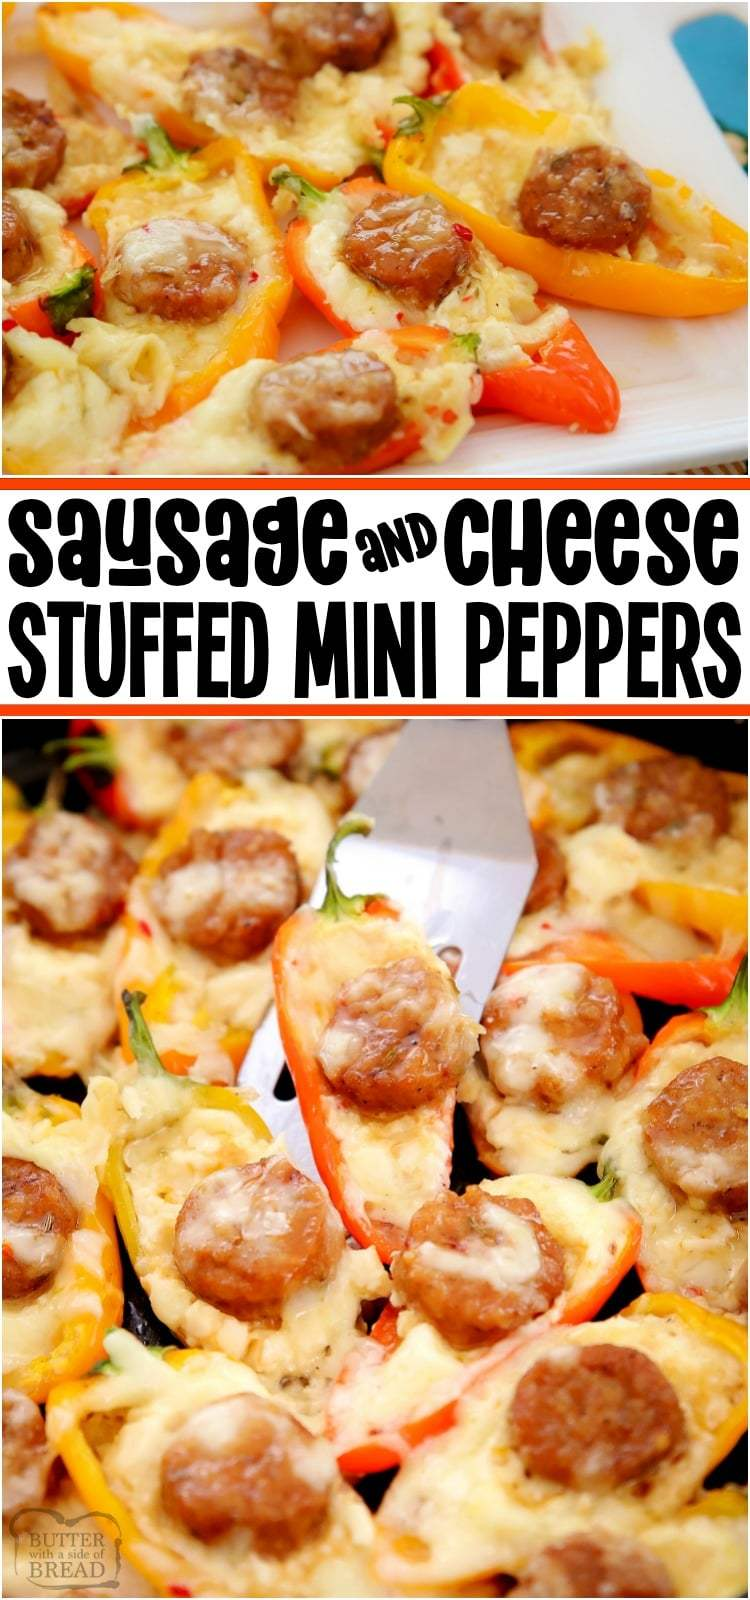 Stuffed Mini Peppers filled with Italian Sausage, cream cheese and Pepper Jack for a hearty, flavorful appetizer everyone loves! #peppers #minipeppers #stuffedpepper #ItalianSausage #Cheese #appetizer #recipe from BUTTER WITH A SIDE OF BREAD